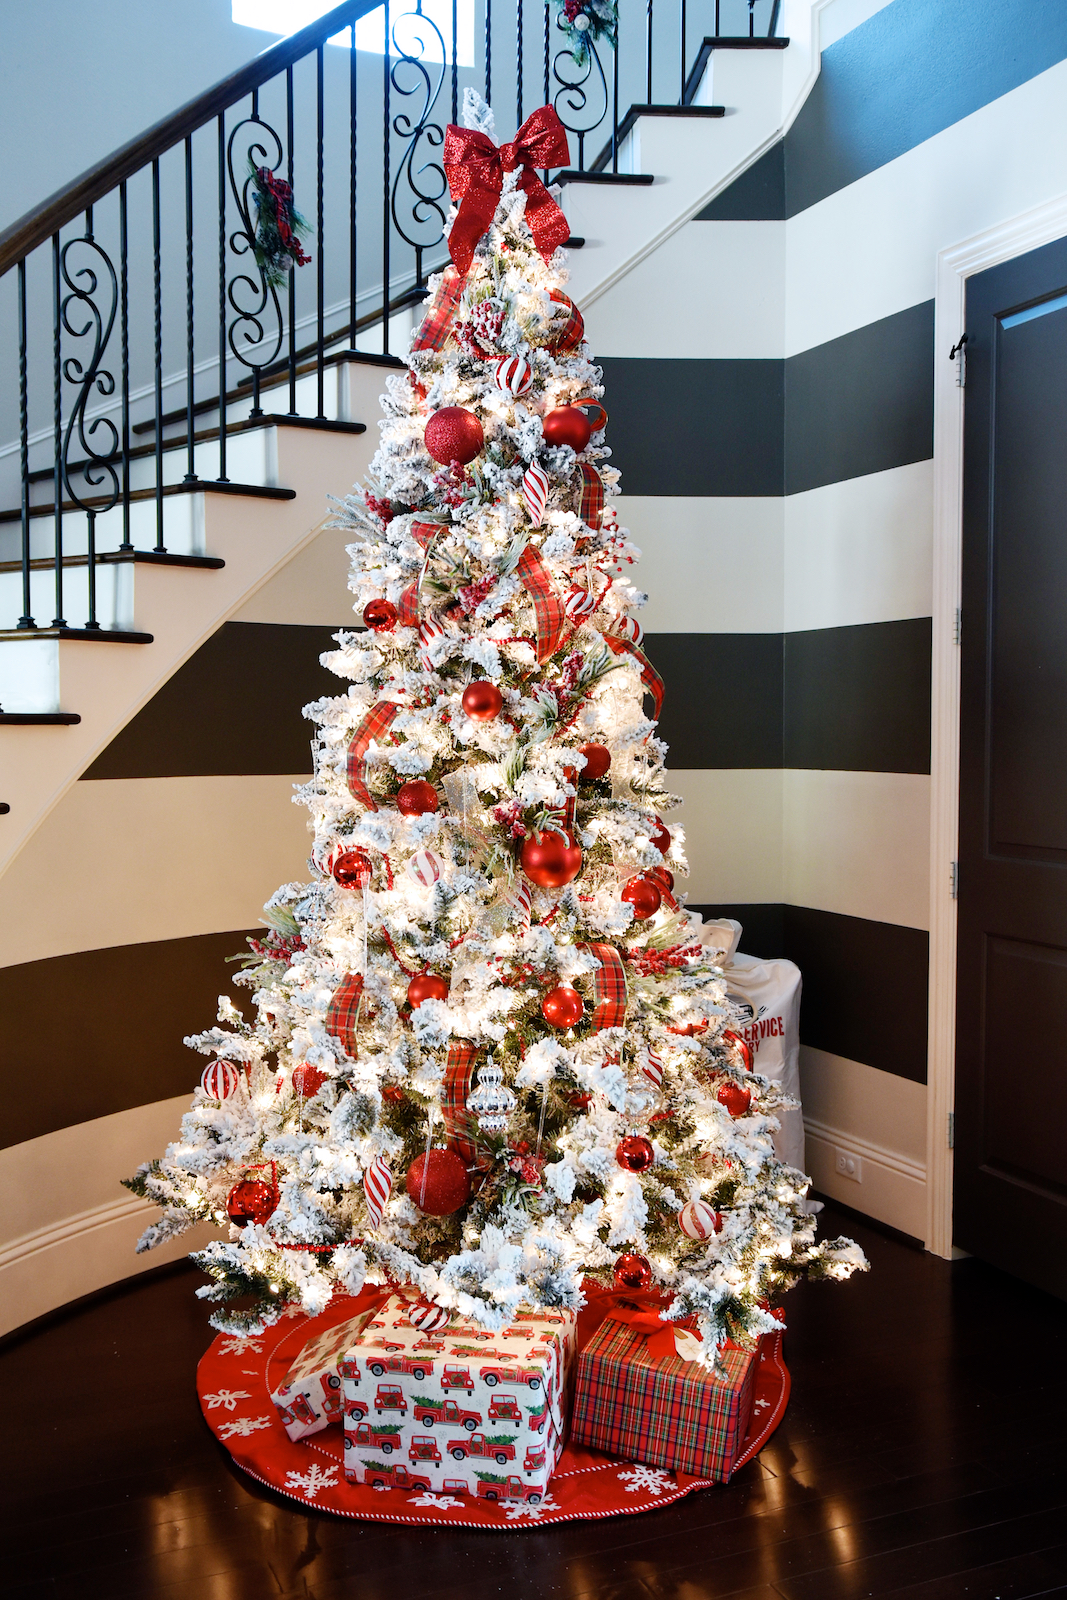 Christmas Decor - flocked Christmas tree